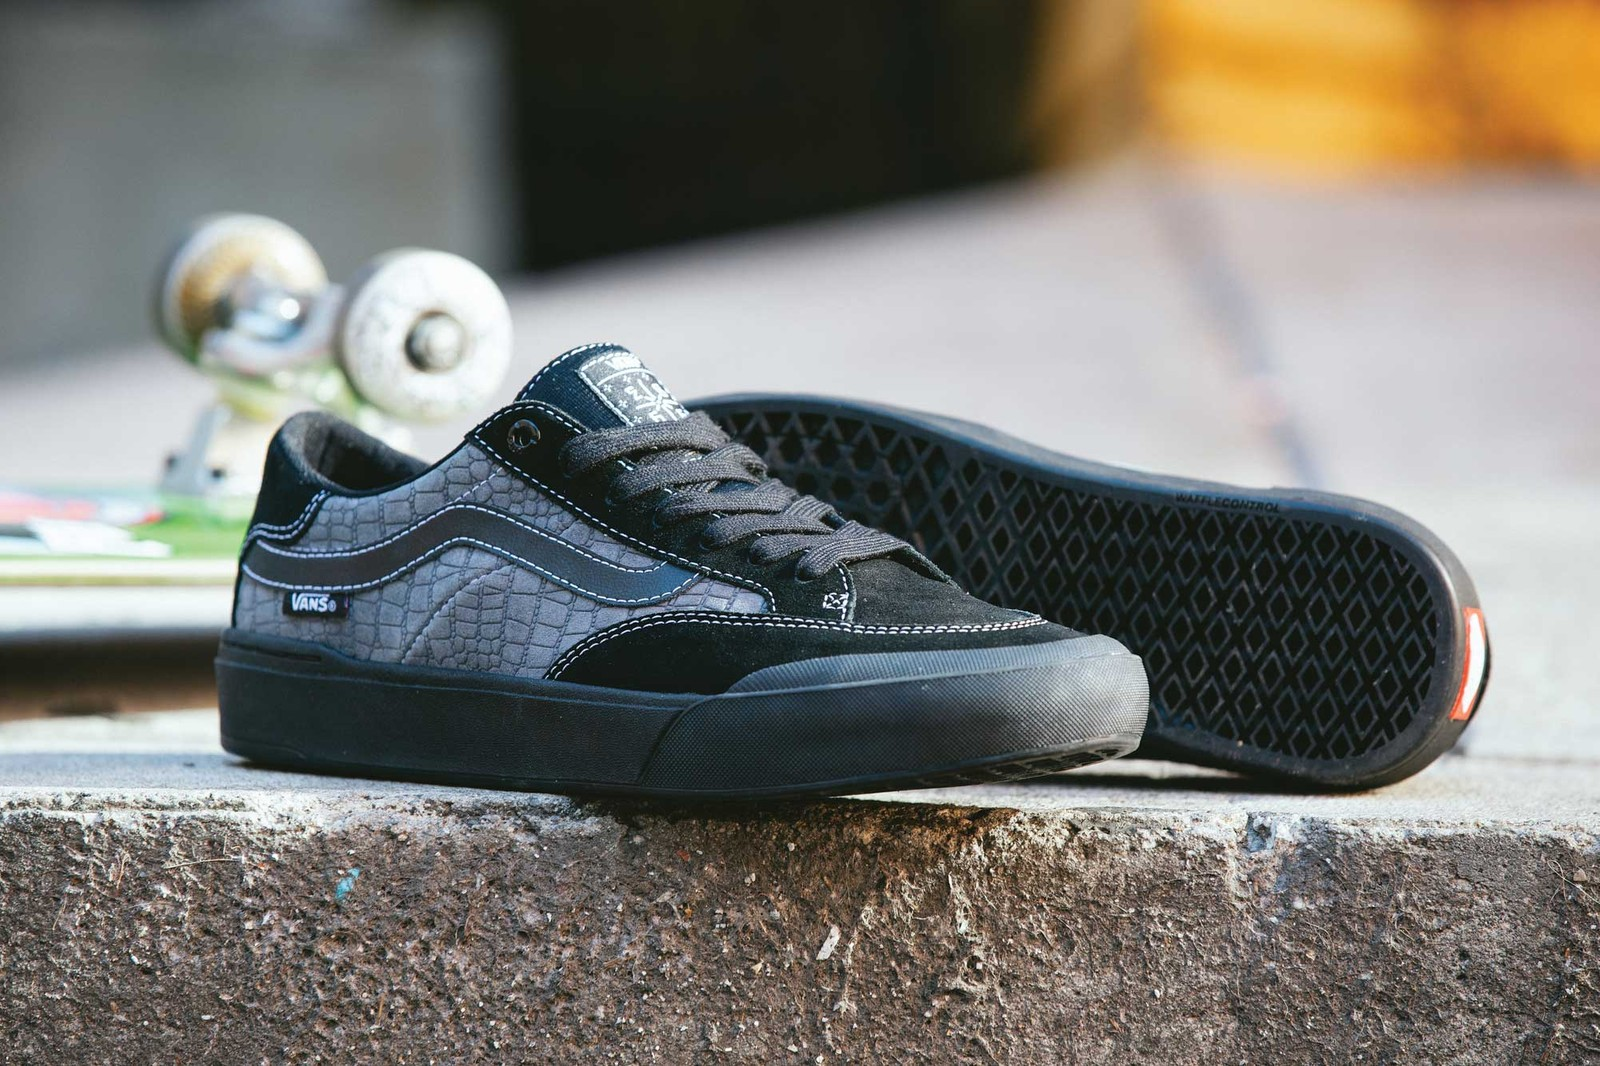 VANS REINTRODUCES CLASSIC 1988 COLORWAY WITH THE BERLE PRO UPDATE